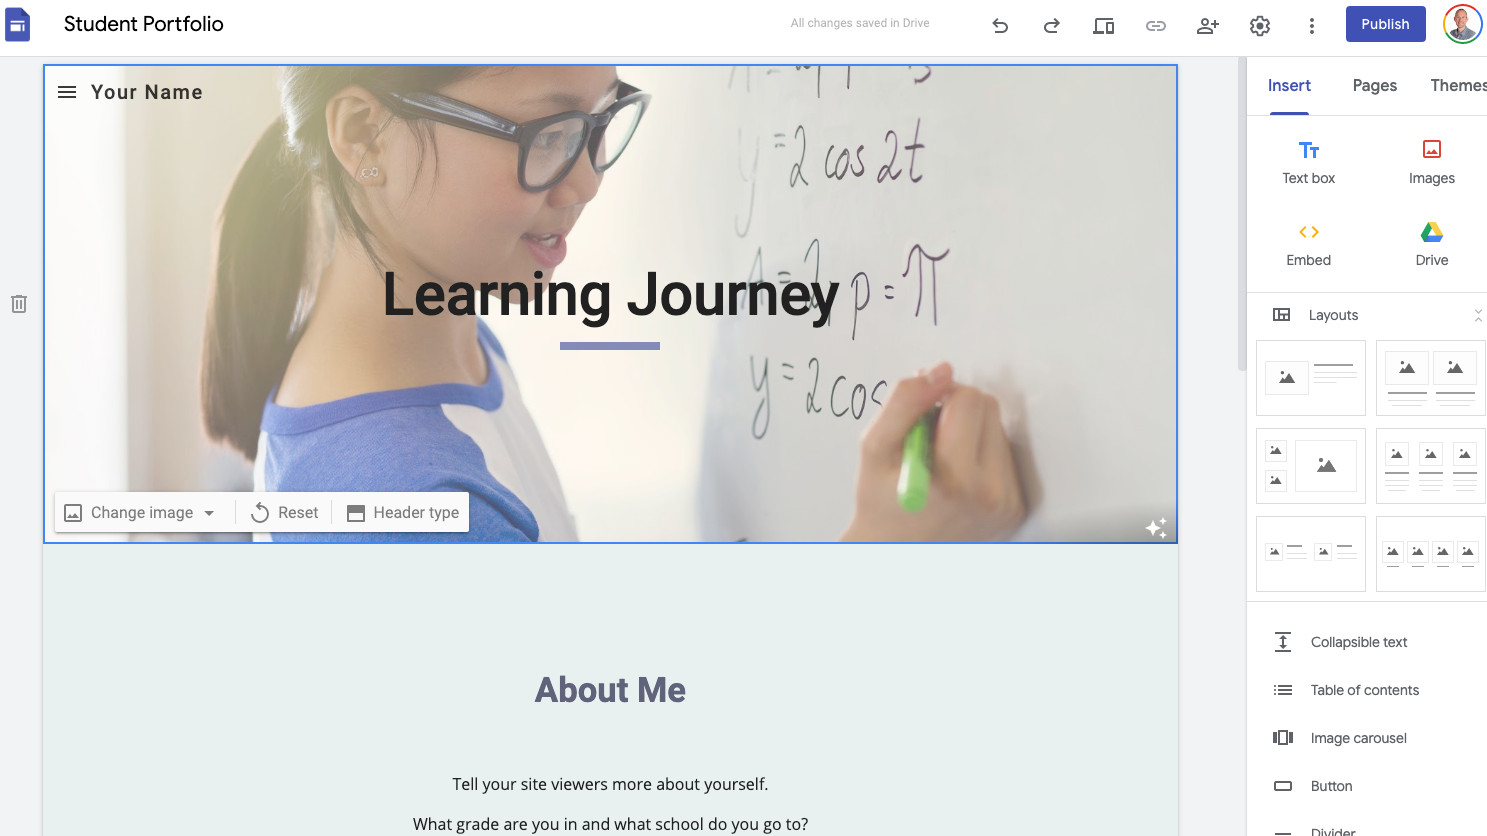 How to use Google Sites to create Learning Portal for your Company